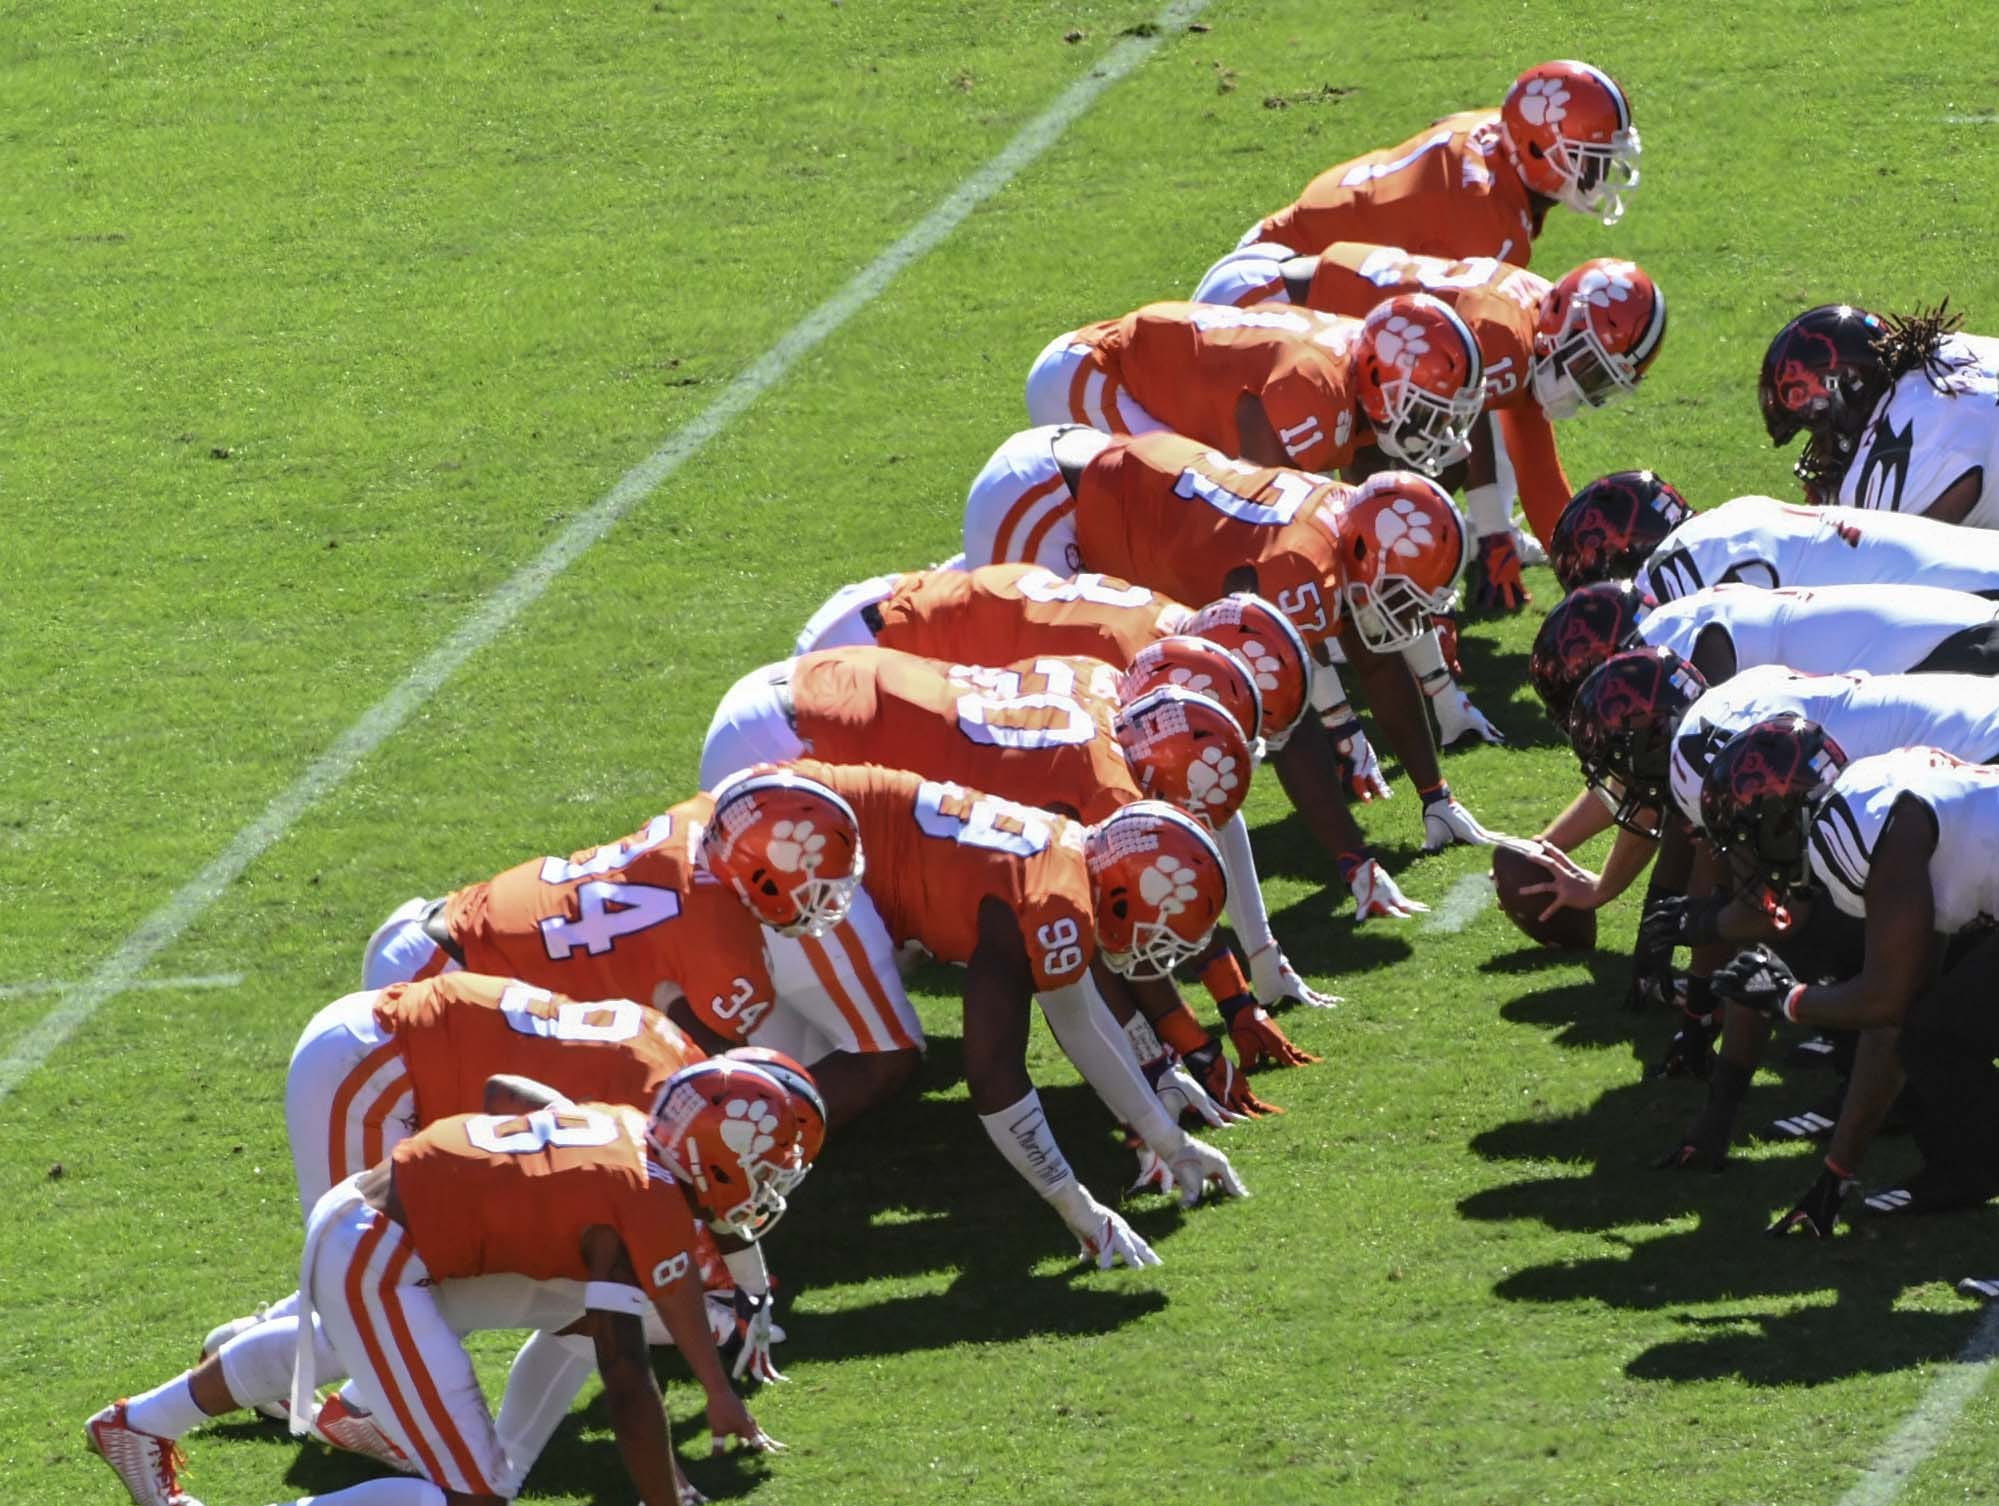 Clemson defense lines up as Louisville kicks a field goal during the first quarter in Memorial Stadium on Saturday, November 3, 2018.